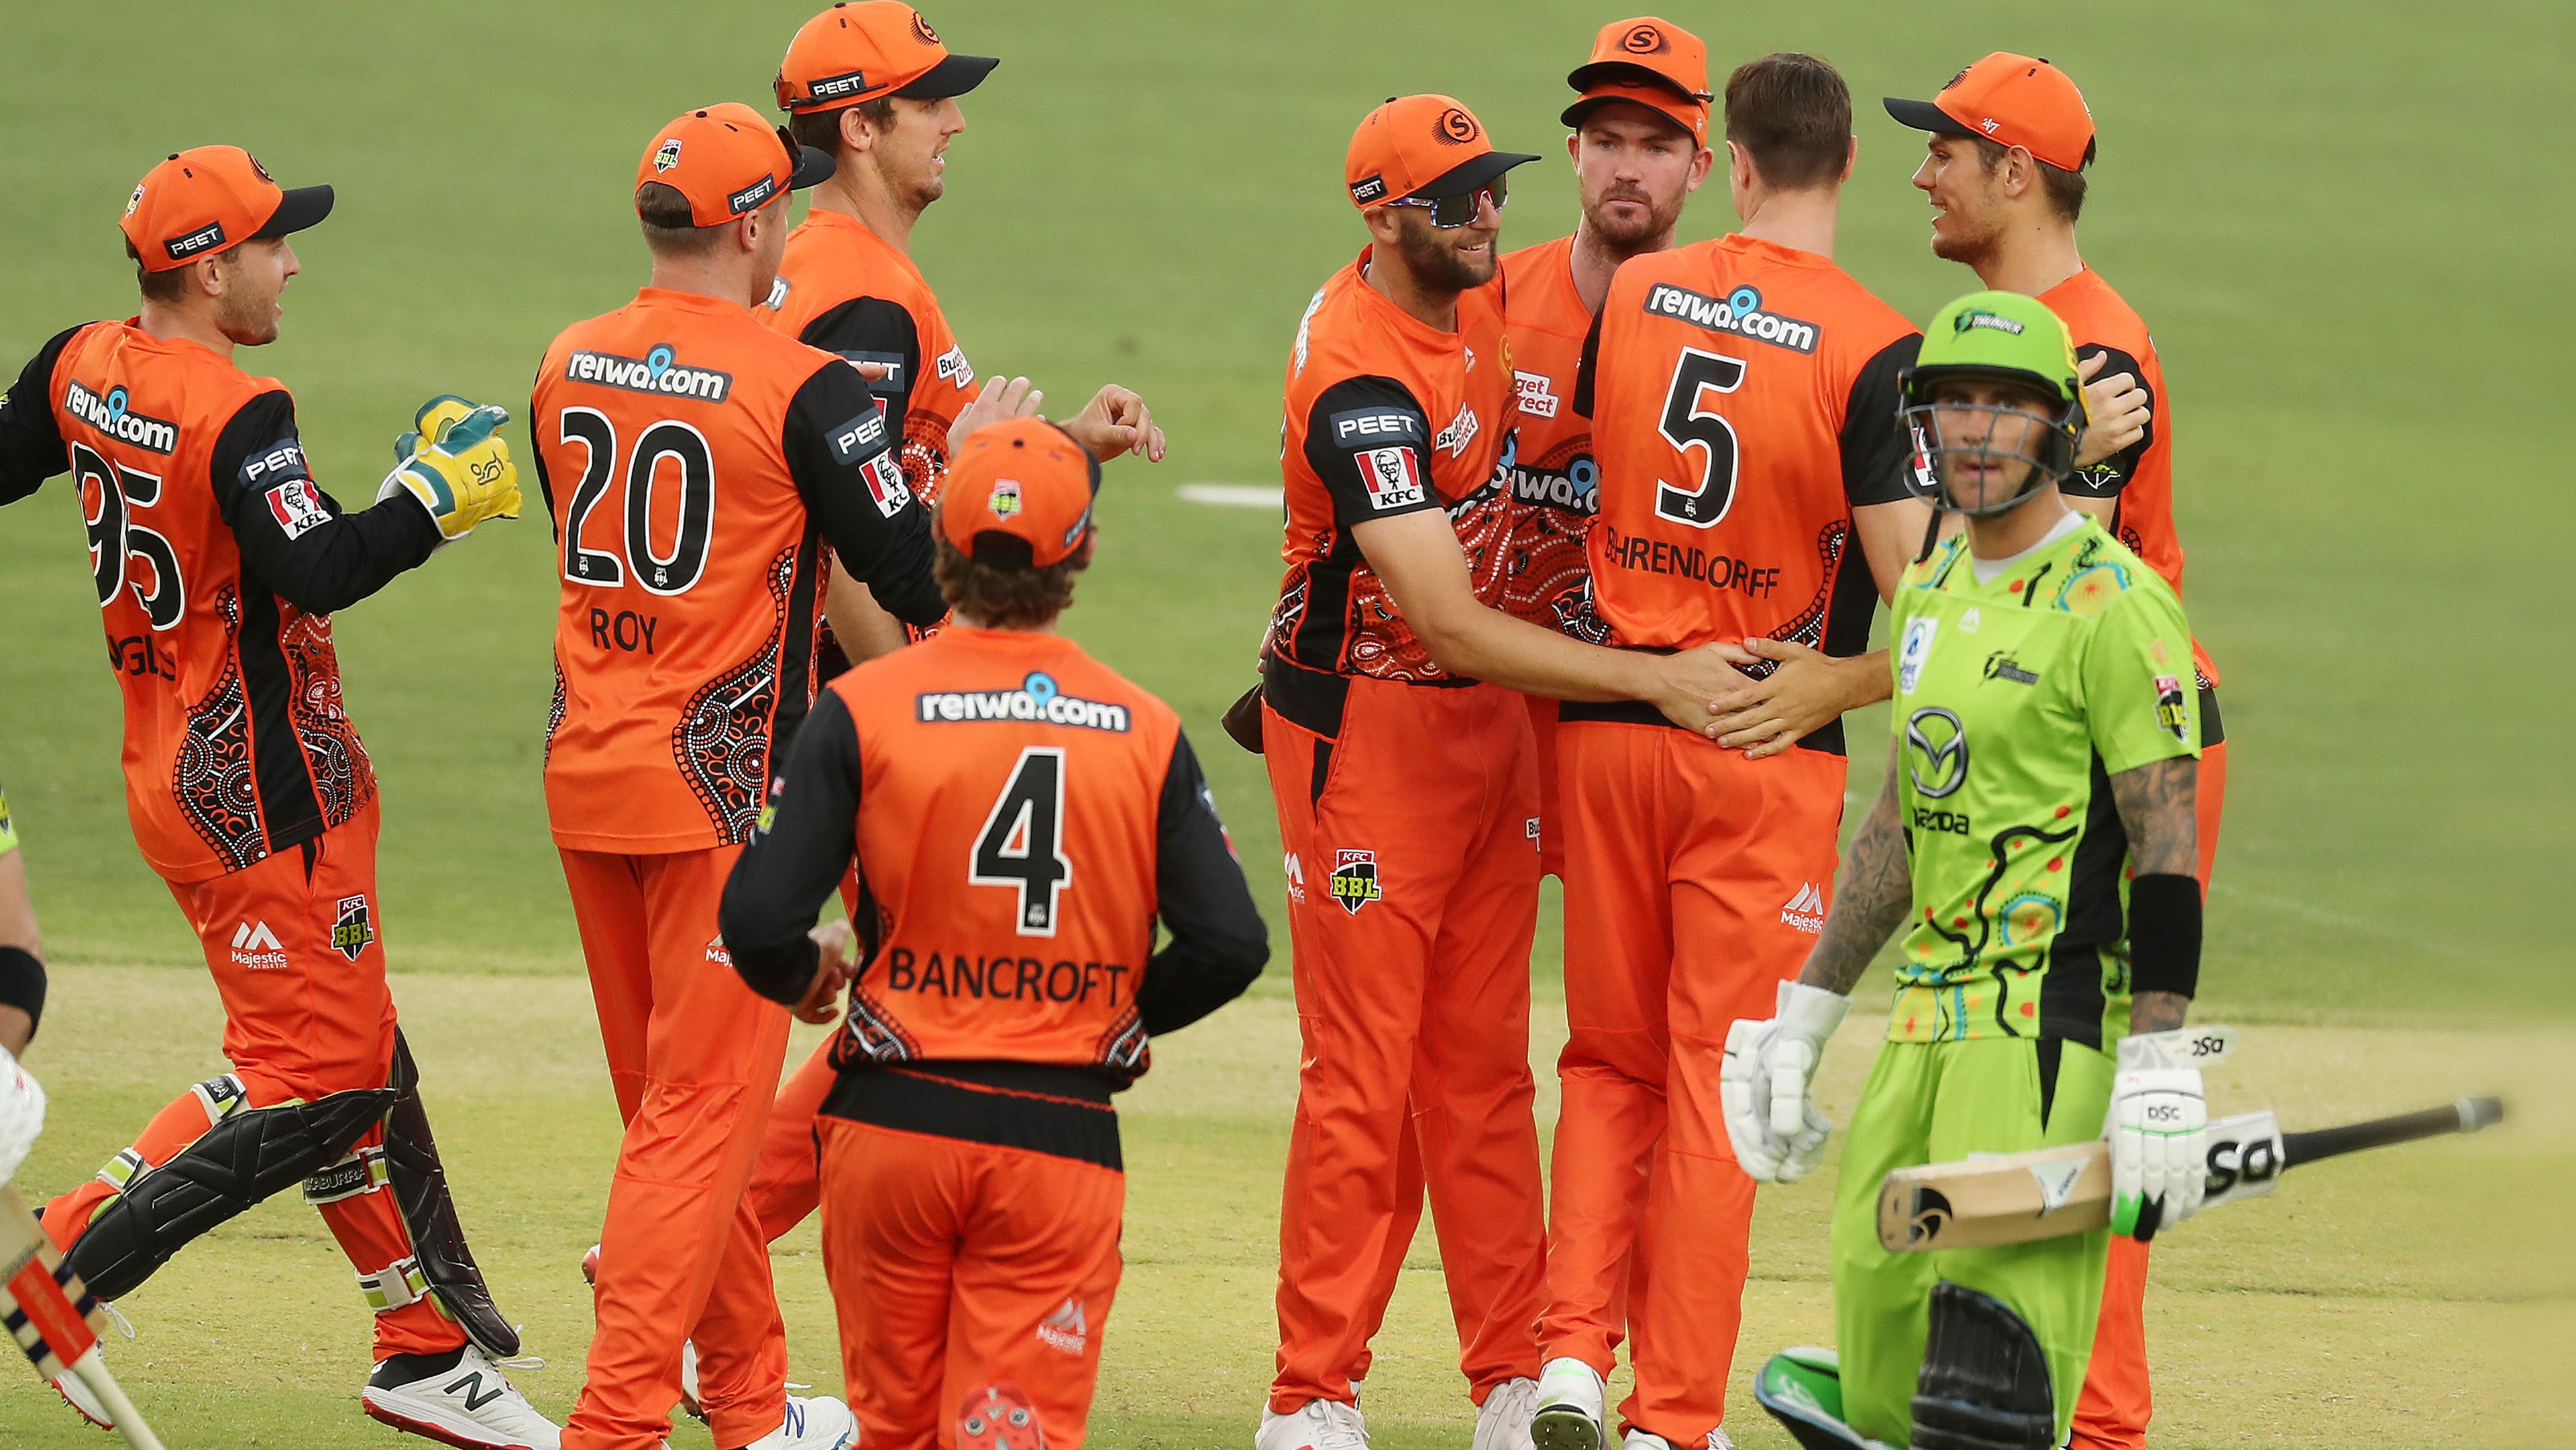 Andrew Tye of the Scorchers  celebrates after taking a catch to dismiss Callum Ferguson of the Thunder.